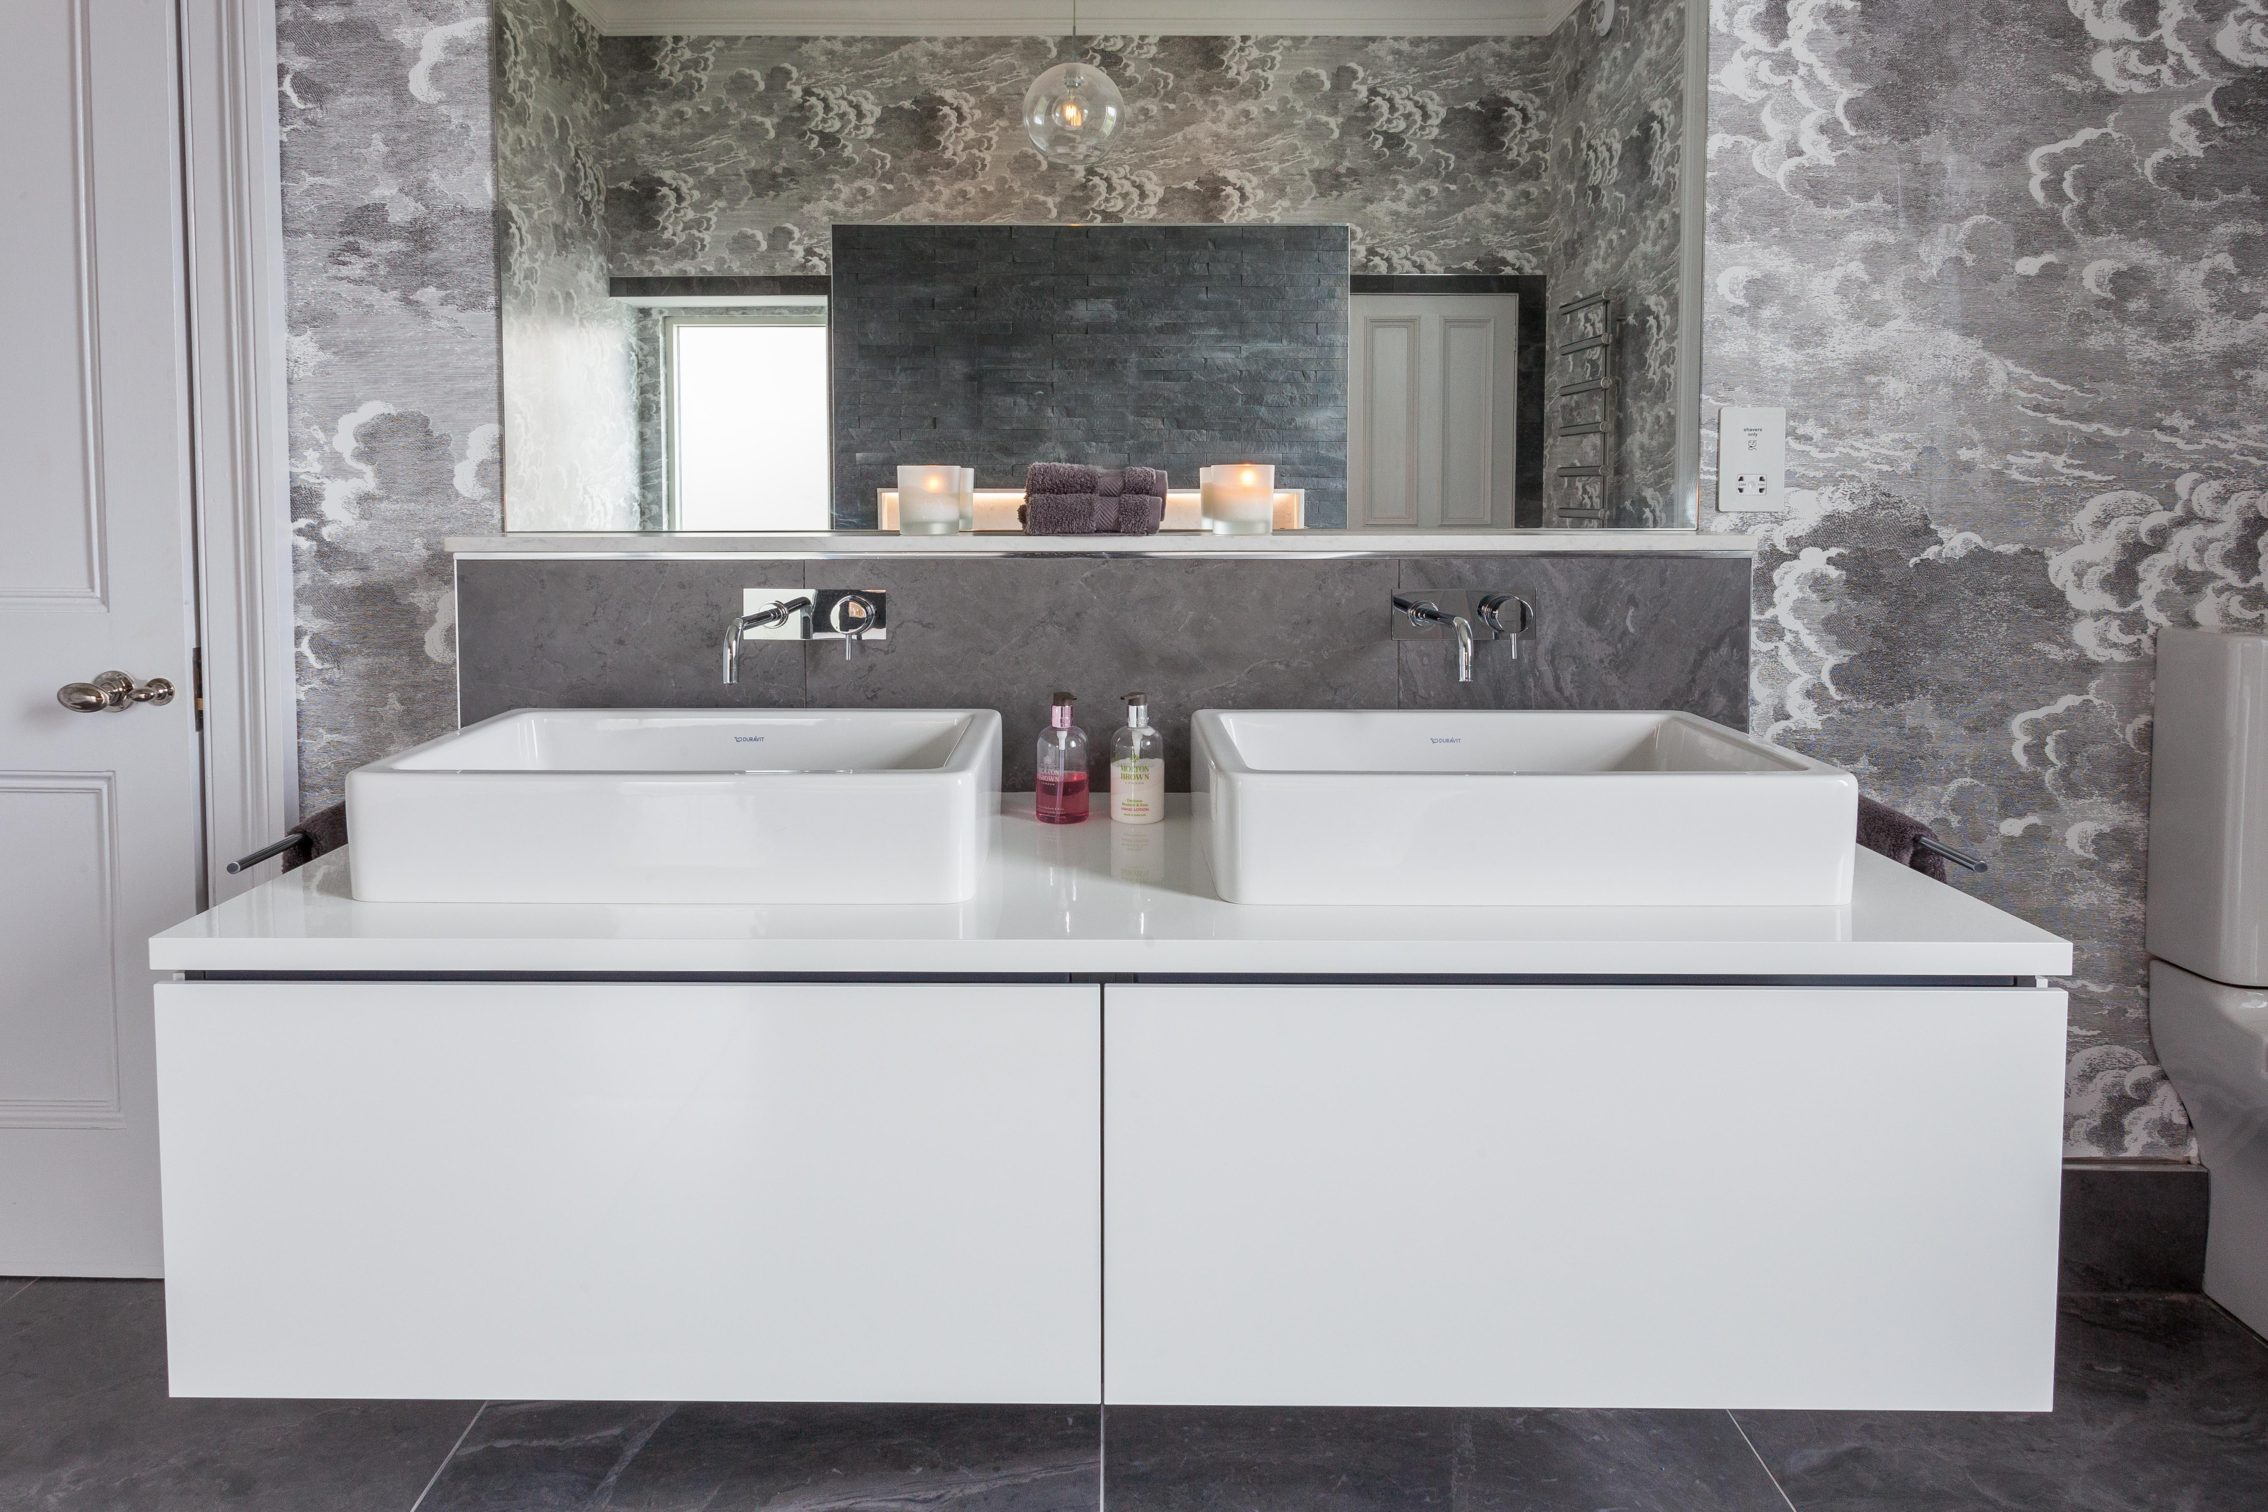 Mirror and sinks